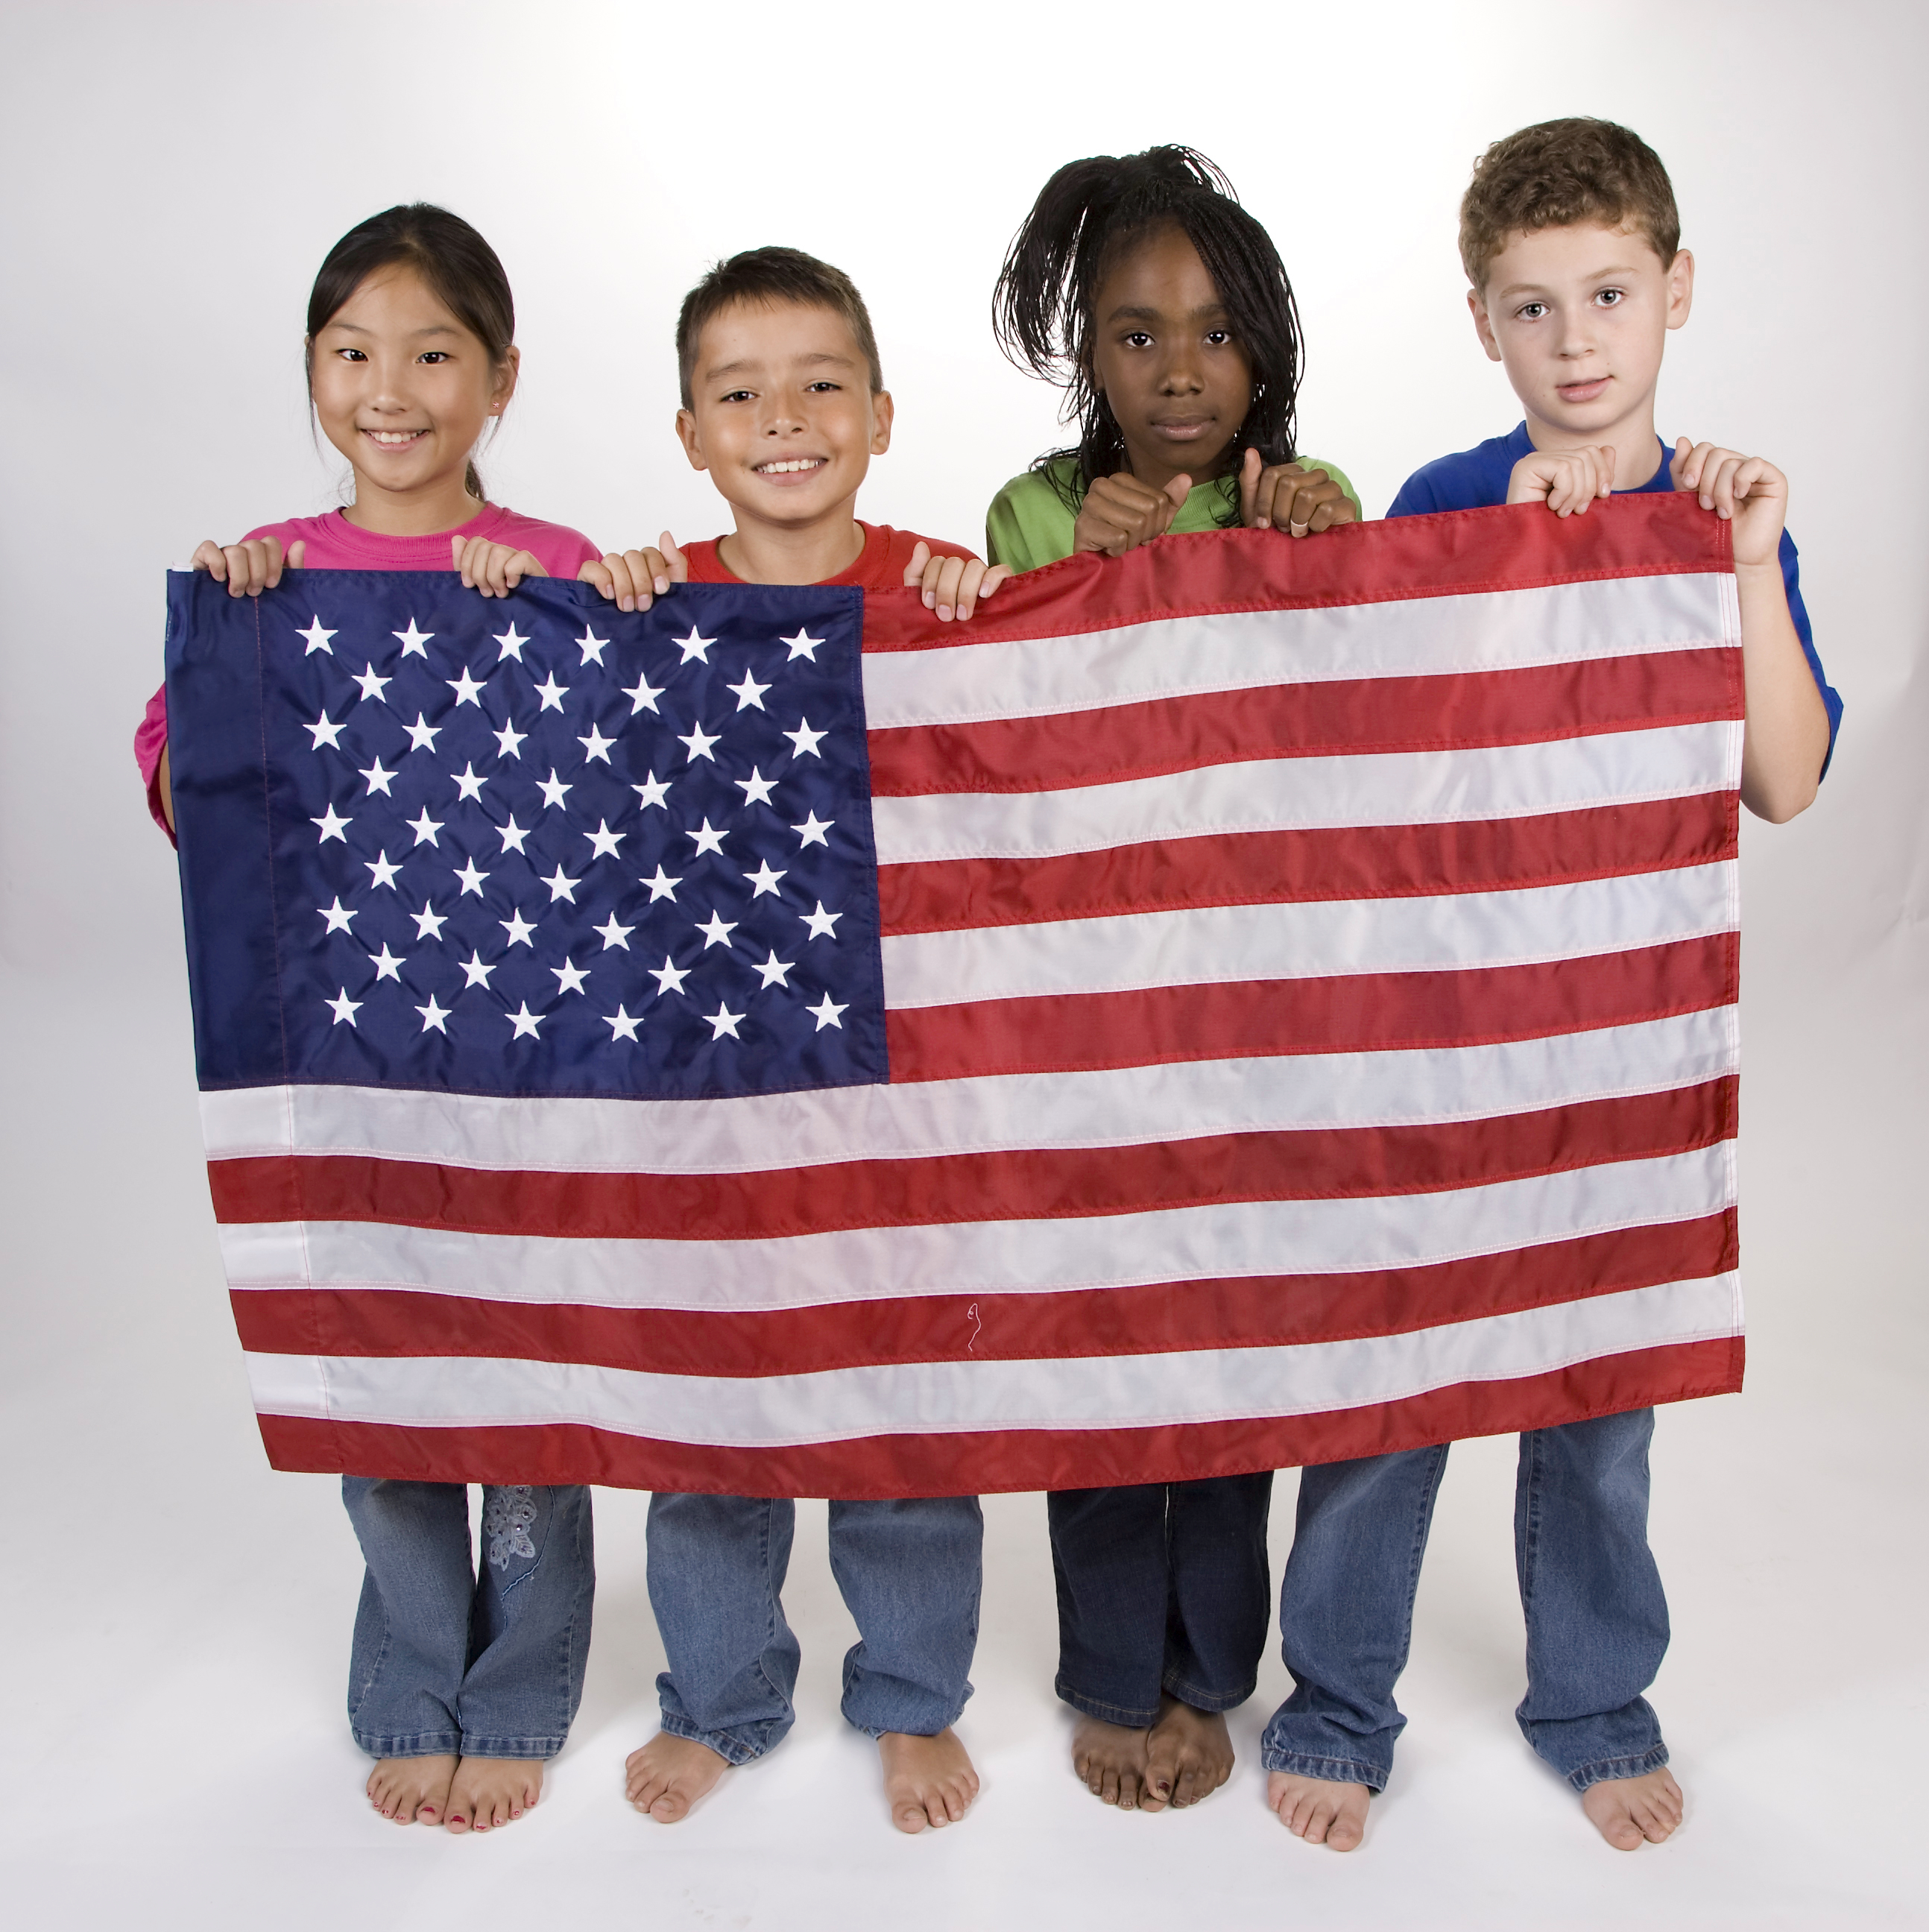 The number of children in the United States is at an all-time high of million. However, the share of the population who are under age 18 is at an all time low of 24%. Learn about the changing number of children in the US based on census data and the rate at which that population is .